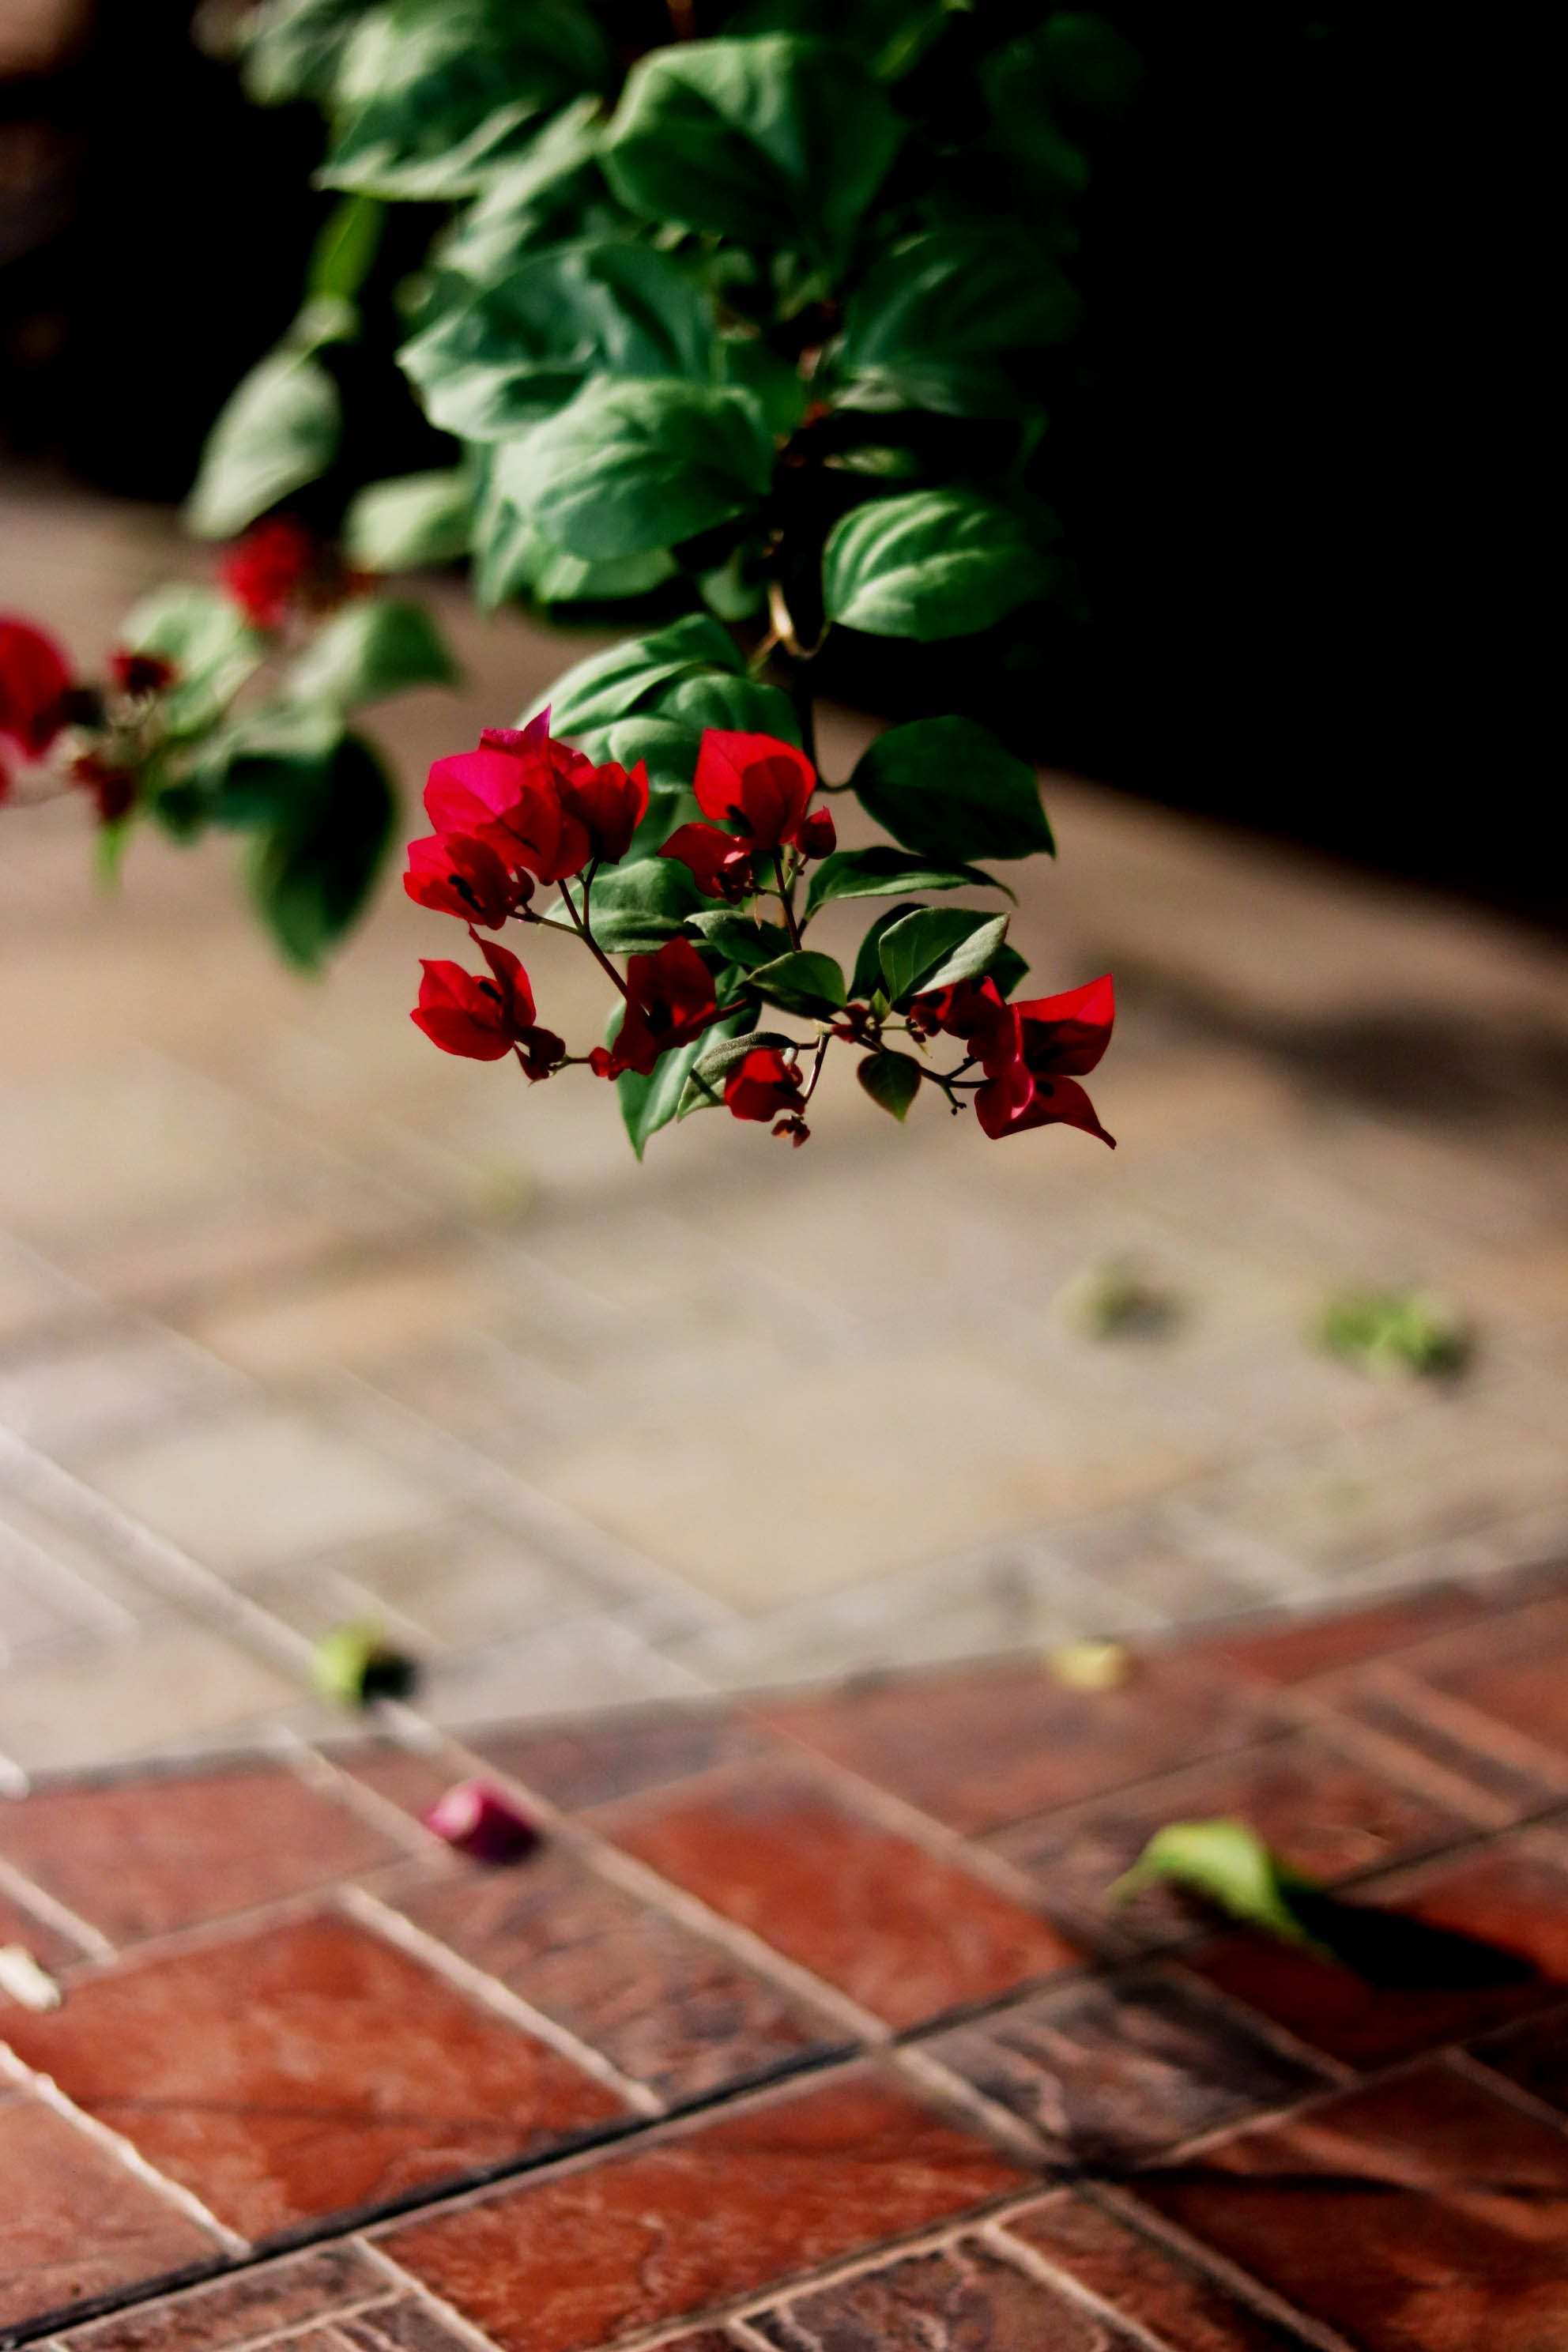 Free stock photo of flower, plants, red flower, selective focus